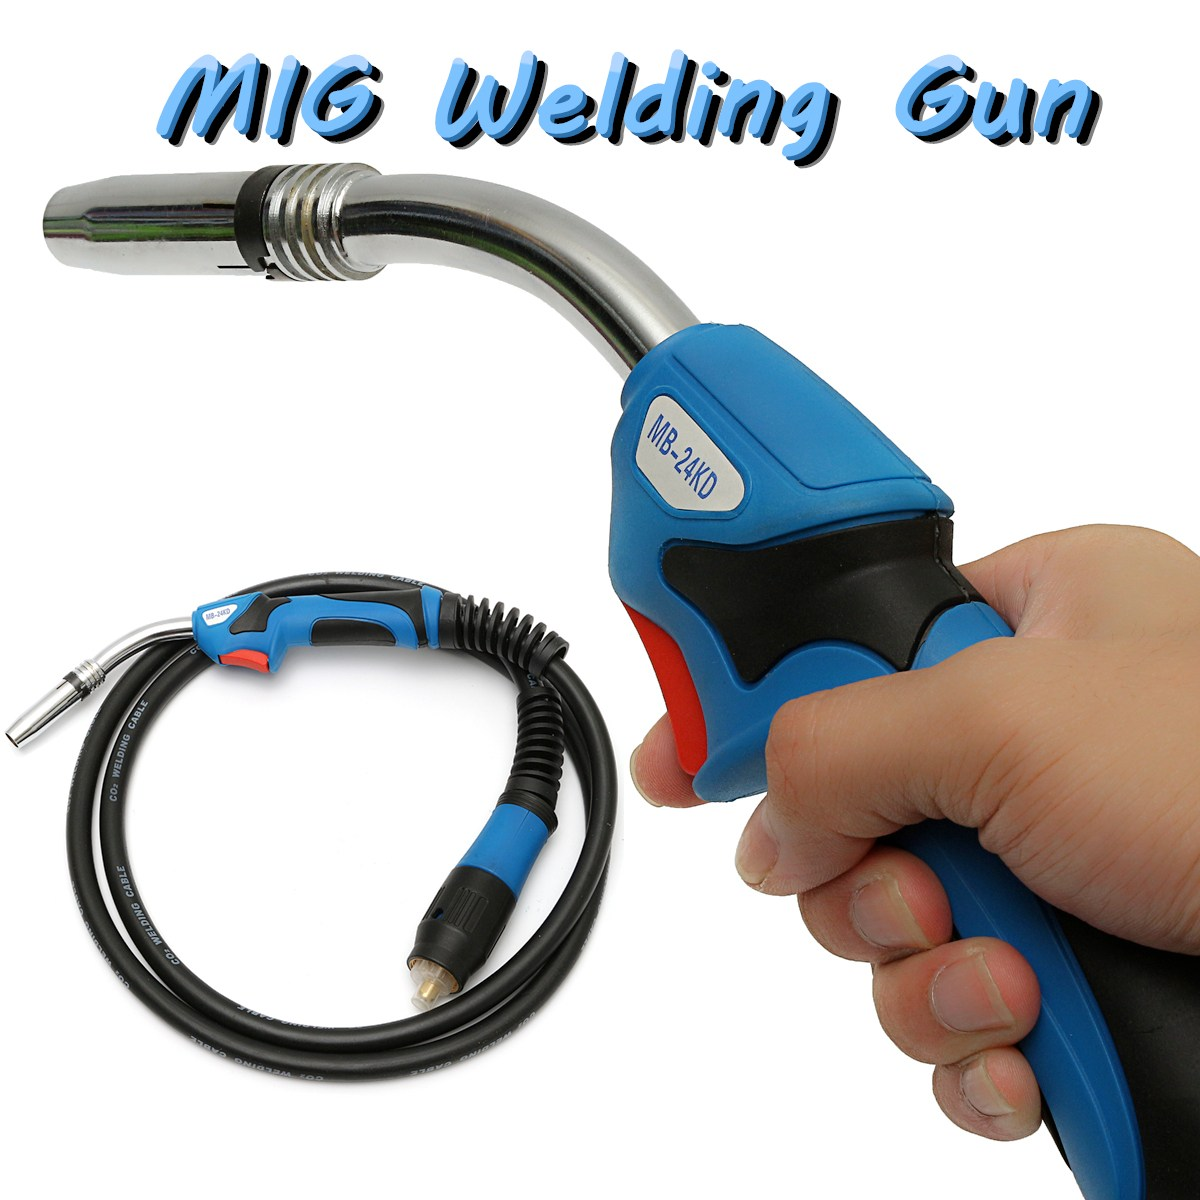 MB24 MIG Welding-Gun Torch 250 Amp with 10ft/ 3 Meter Lead Binzel Style Euro Adapter nt1 3t air cooled gas metal arc welding gun north mig welding torch coupled with twe co fitting 3 meter